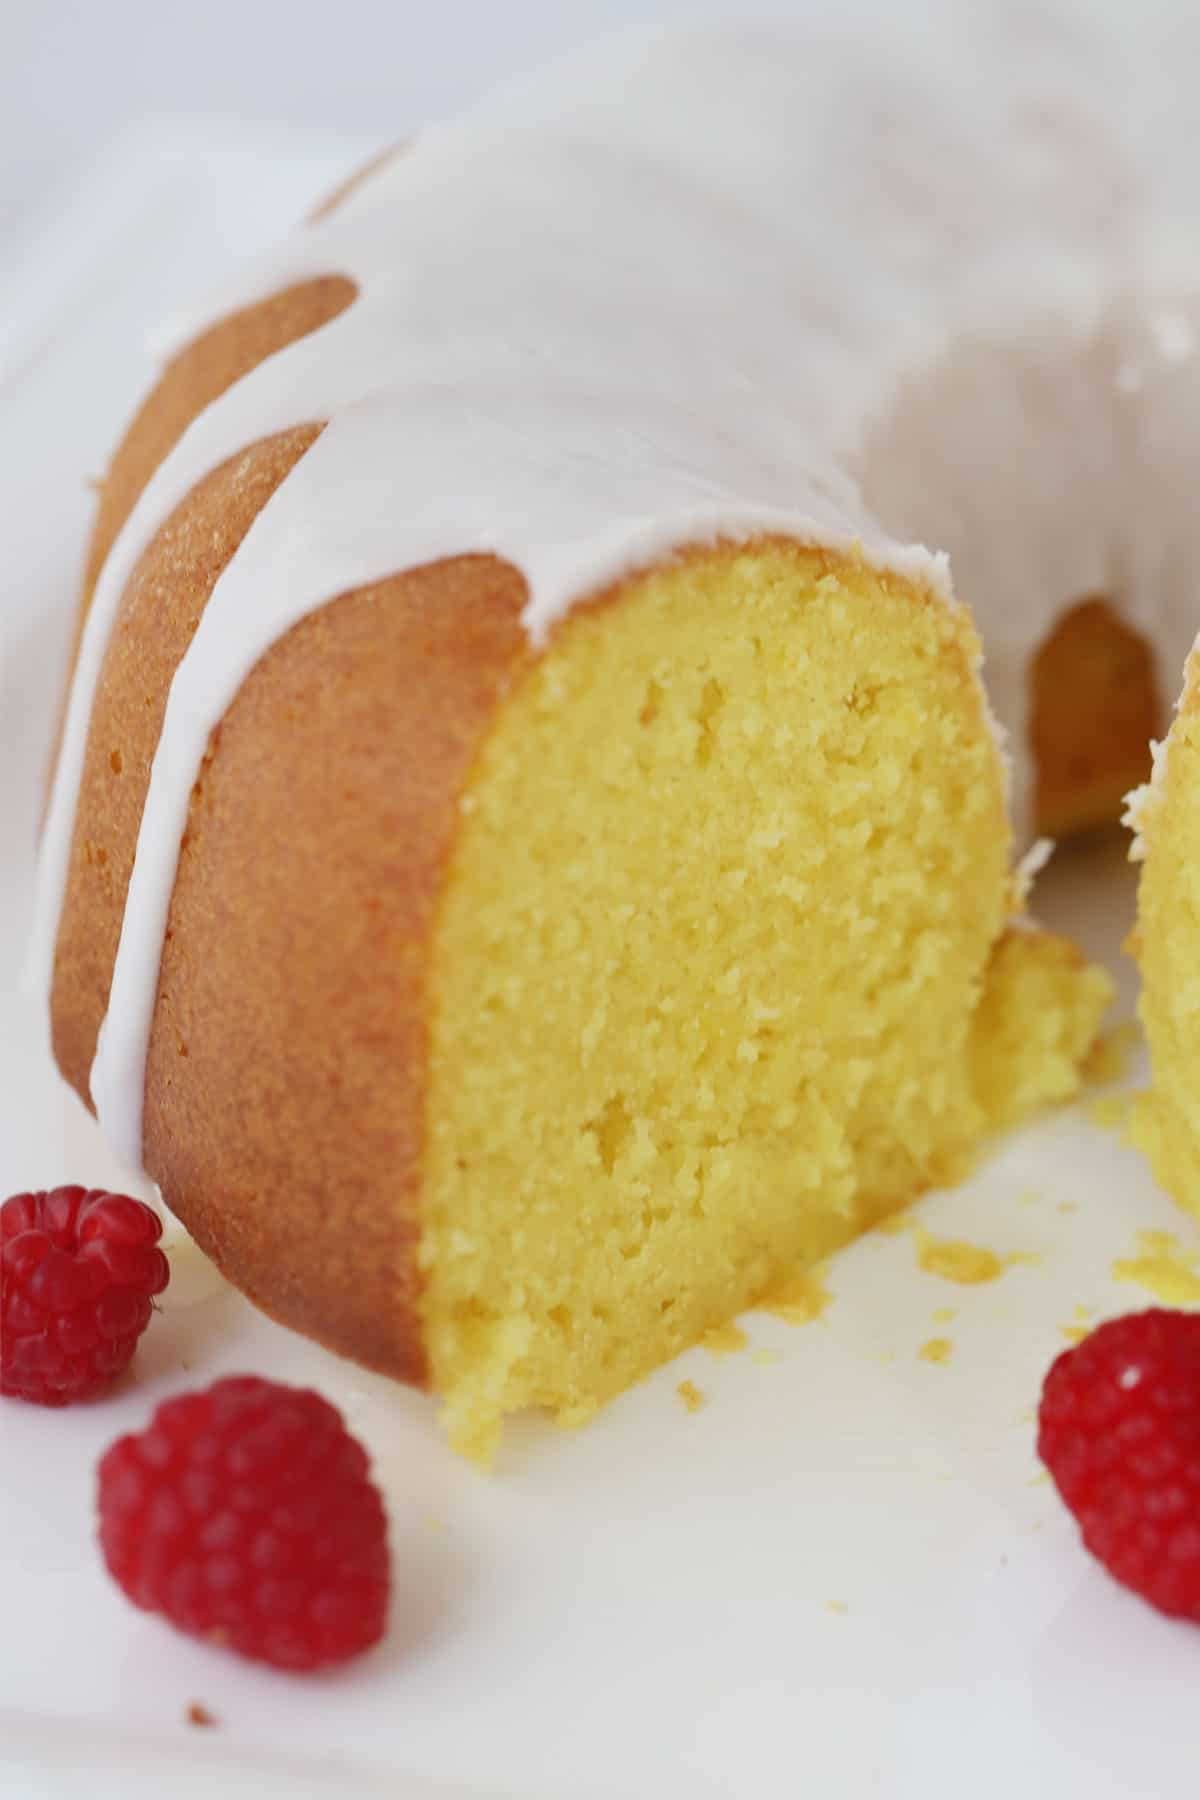 lemon bundt cake with lemon glaze and a few raspberries